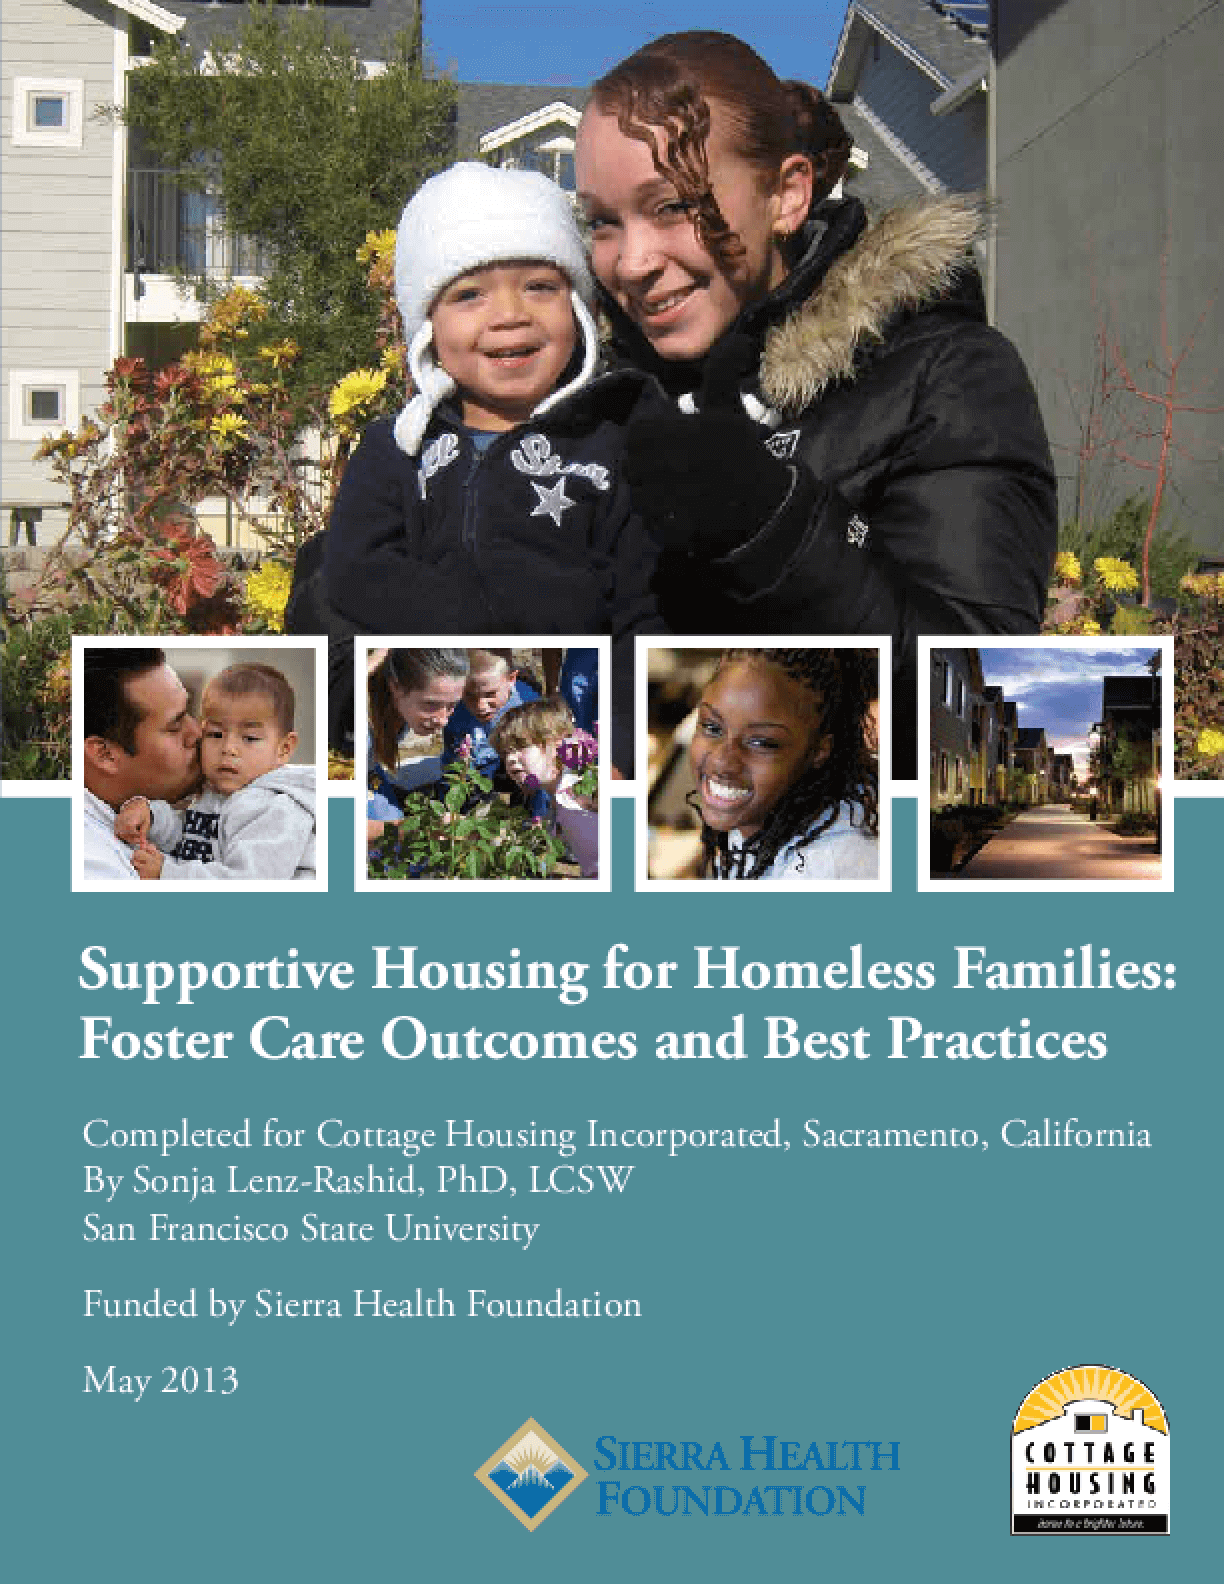 Supportive Housing for Homeless Families: Foster Care Outcomes and Best Practices